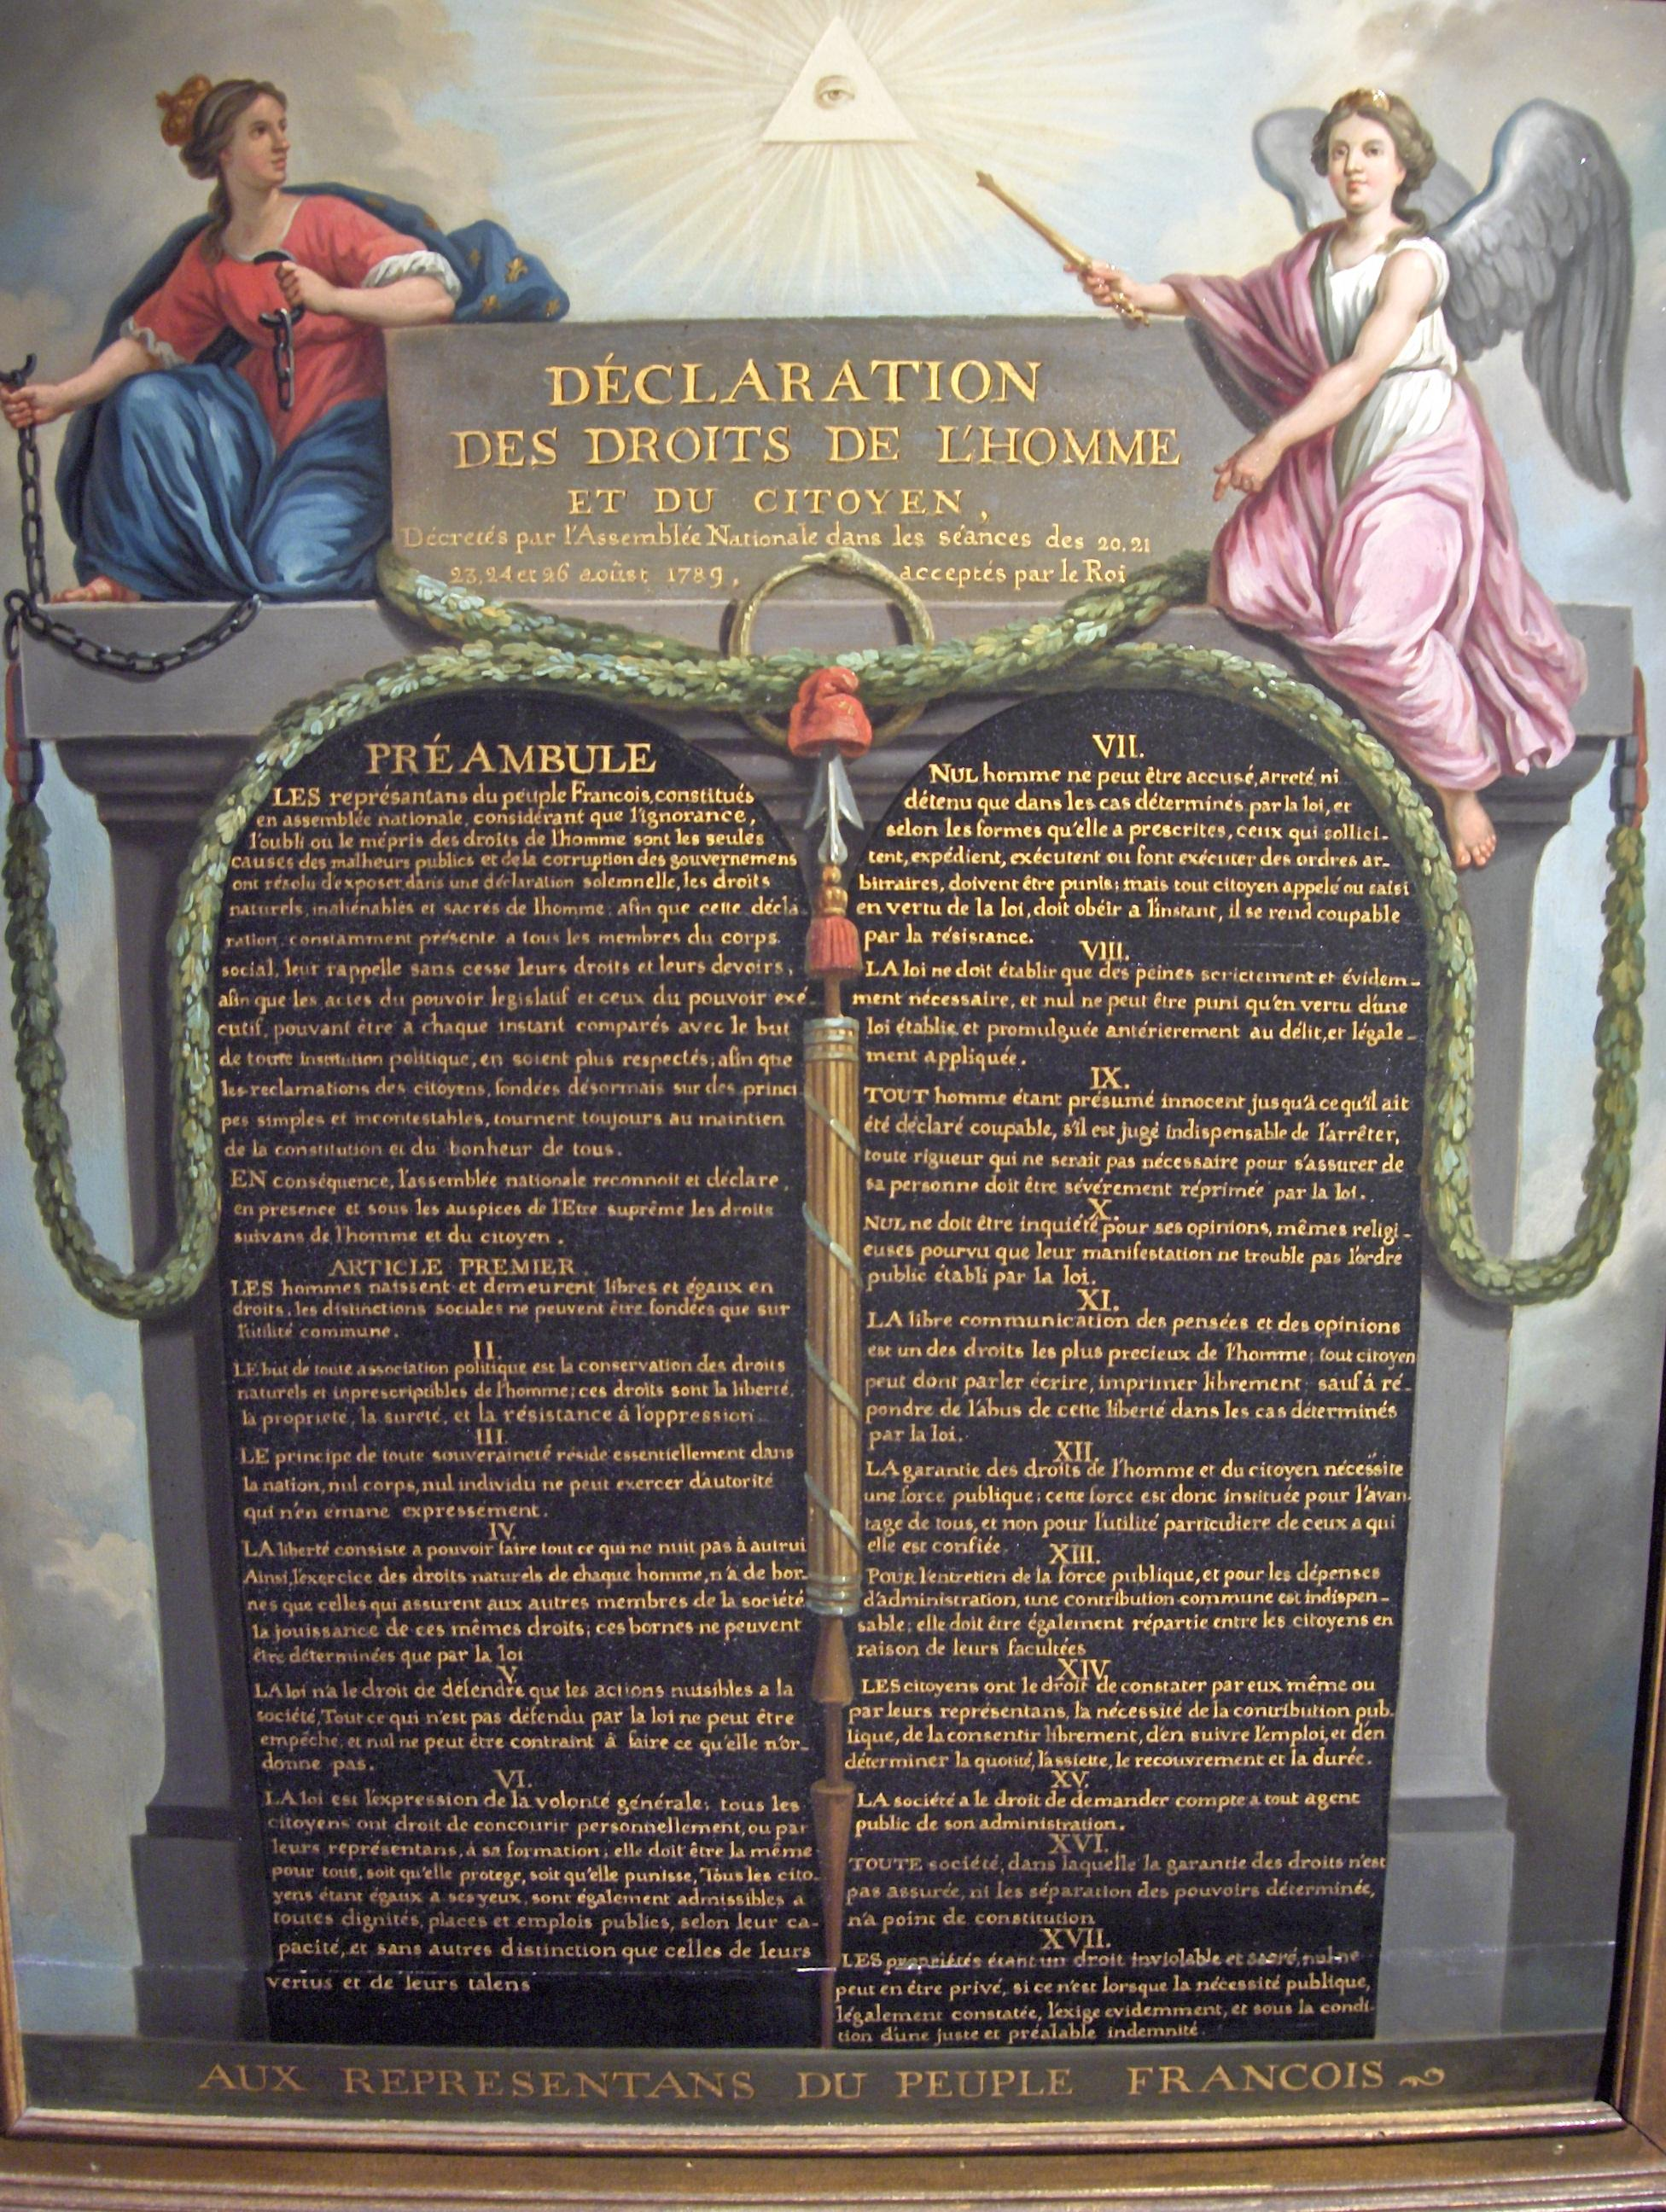 Today in History: 26 August 1789: Declaration of Rights of ...